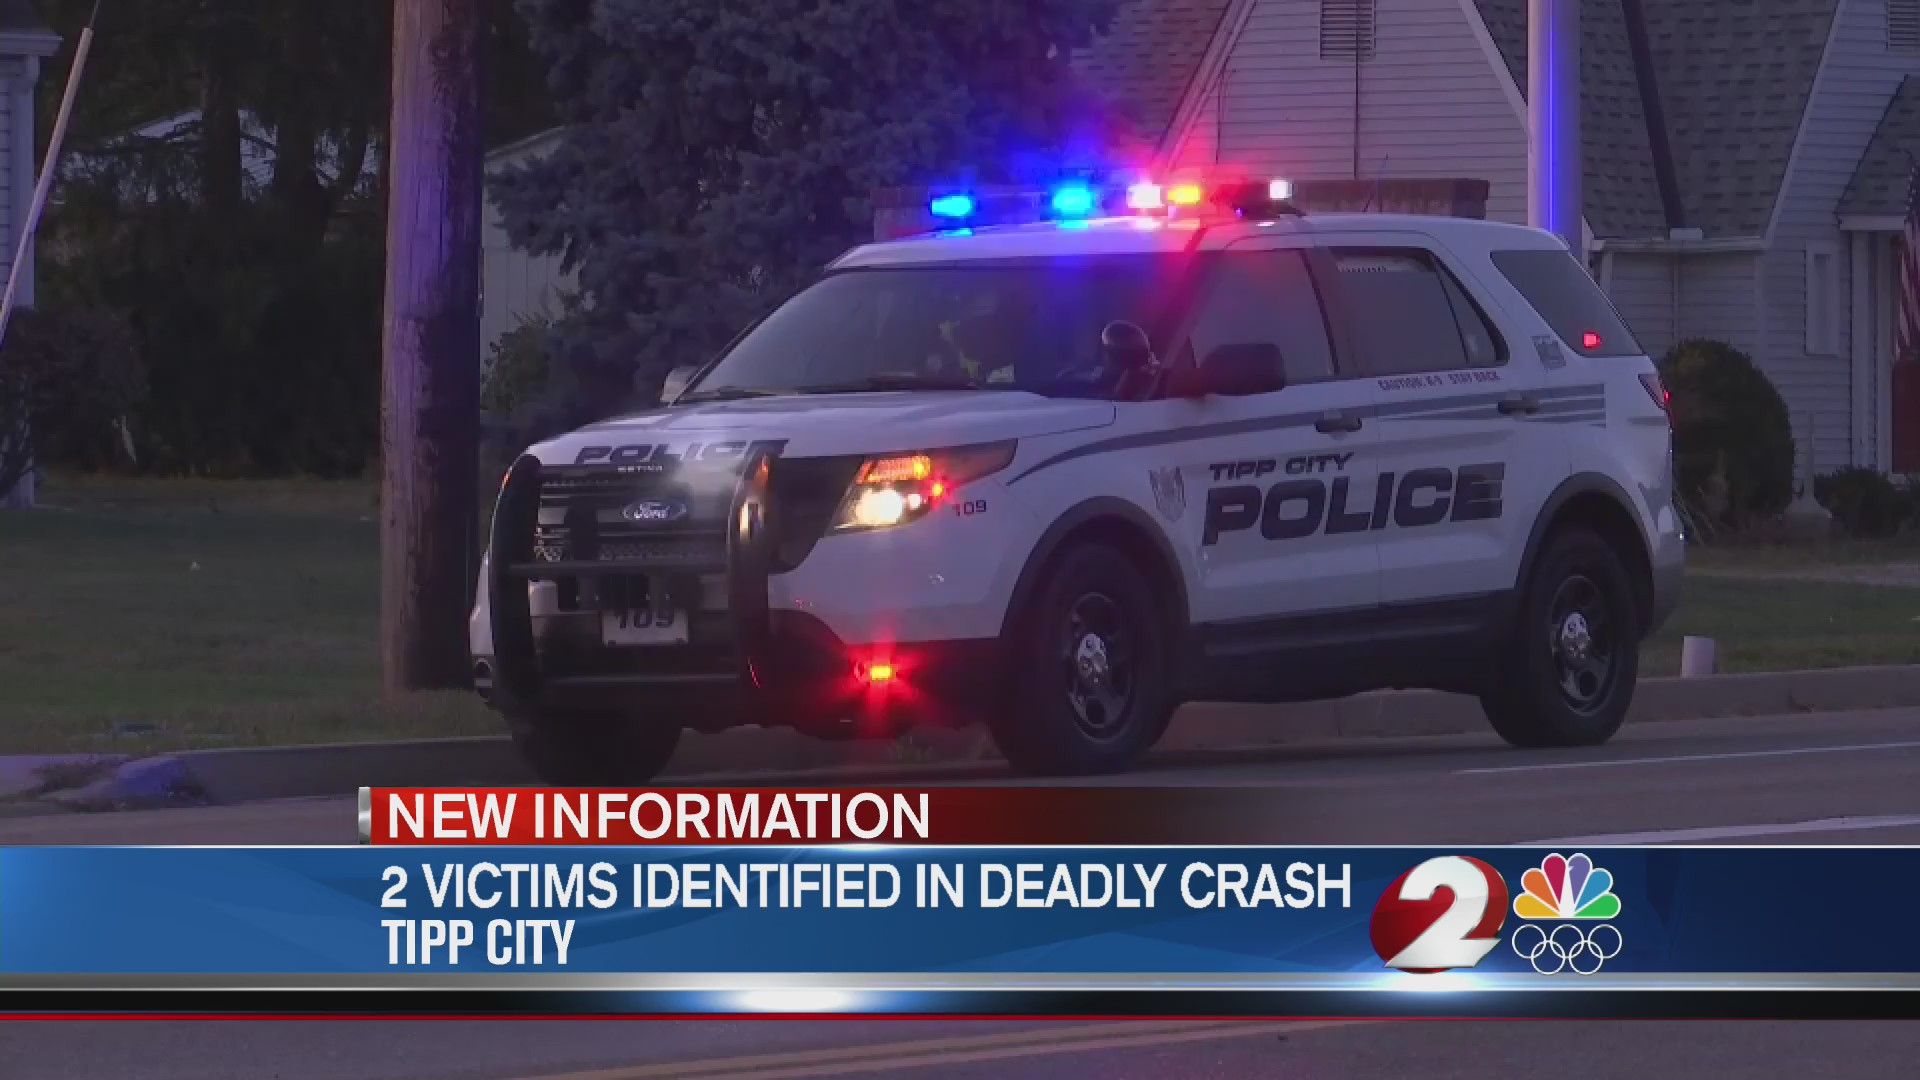 2 victims identified in deadly Tipp City crash